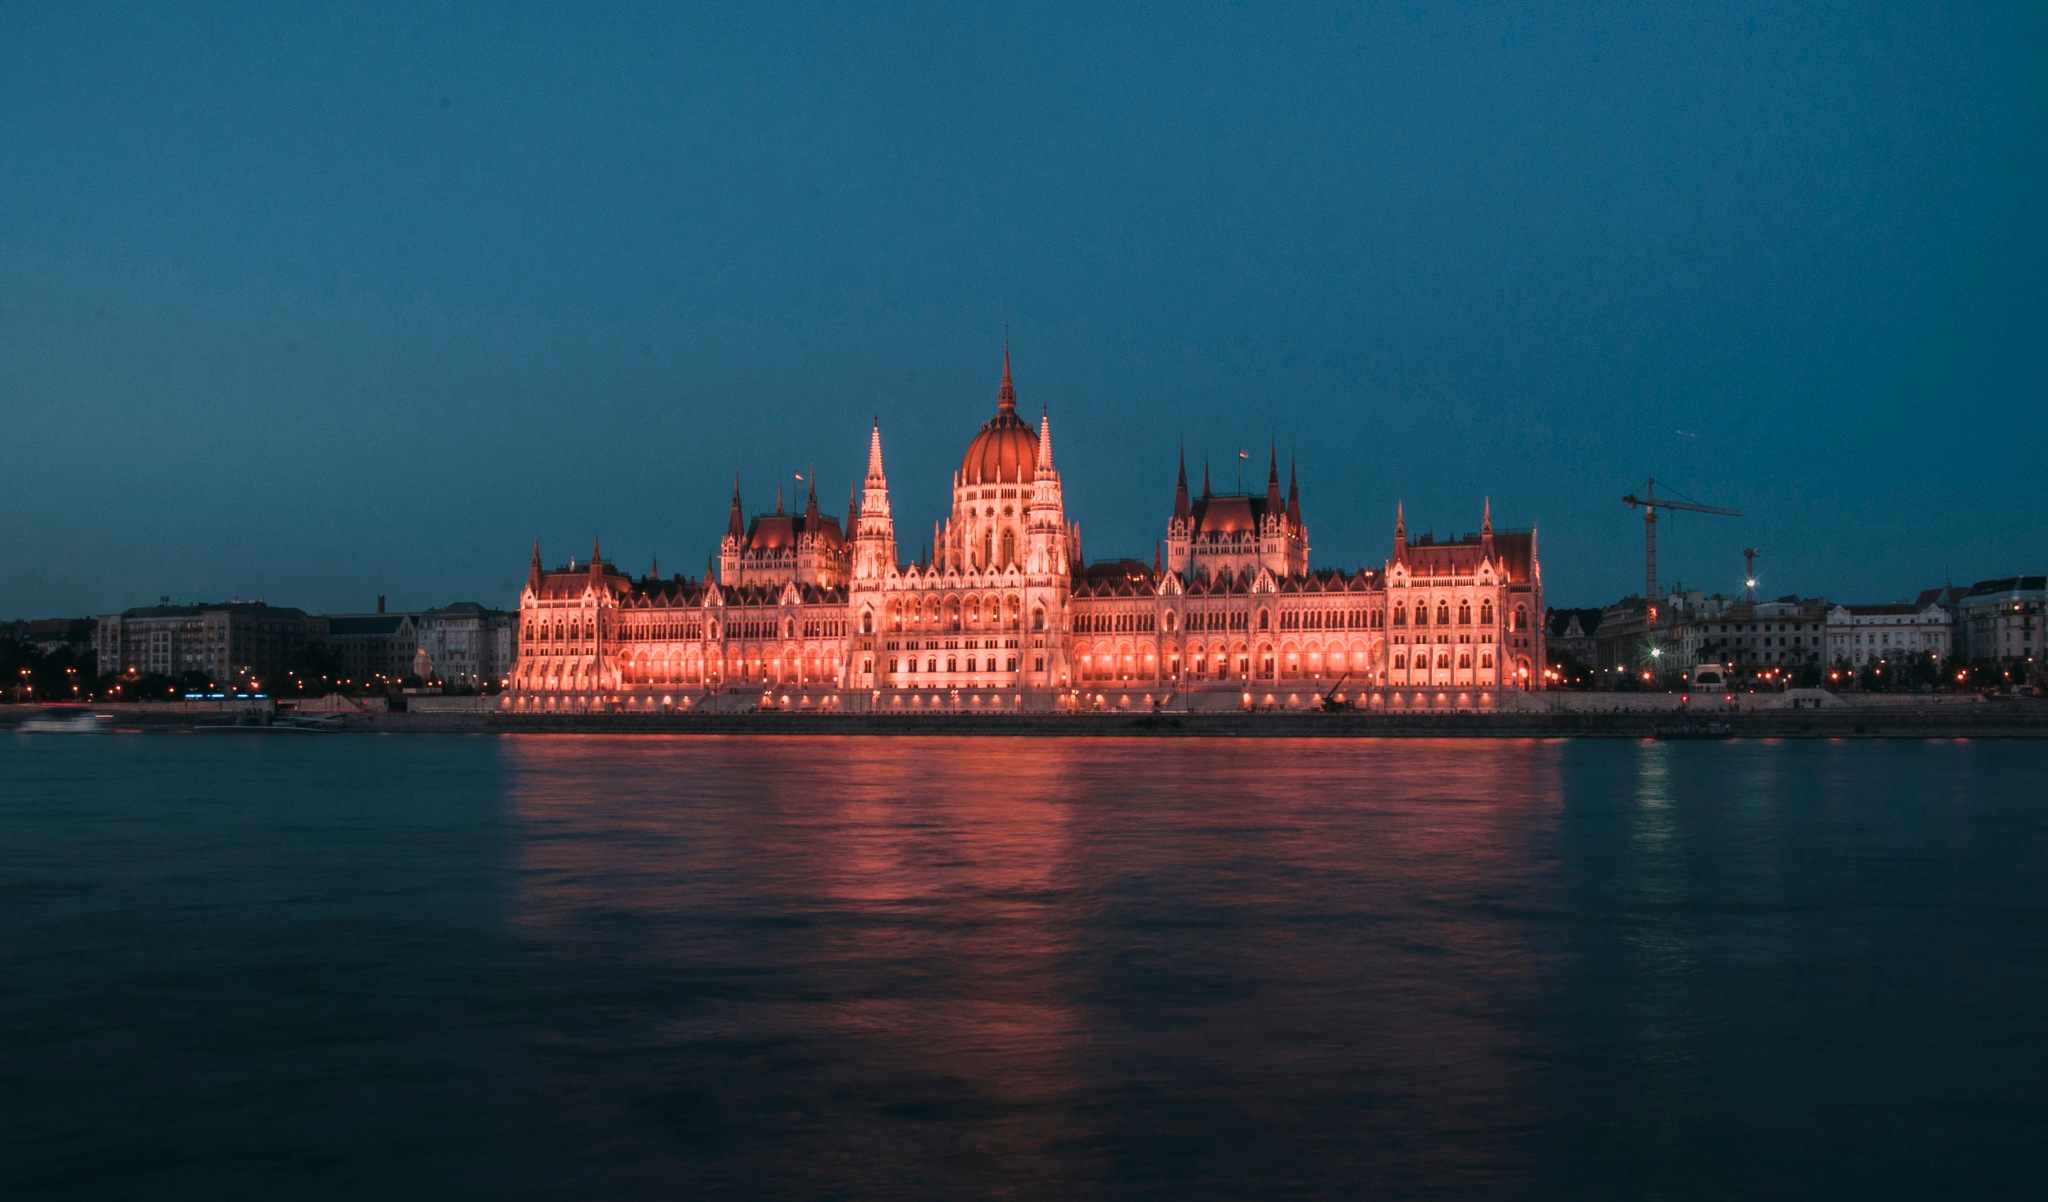 Parlament of Budapest by Oleksandr Albov